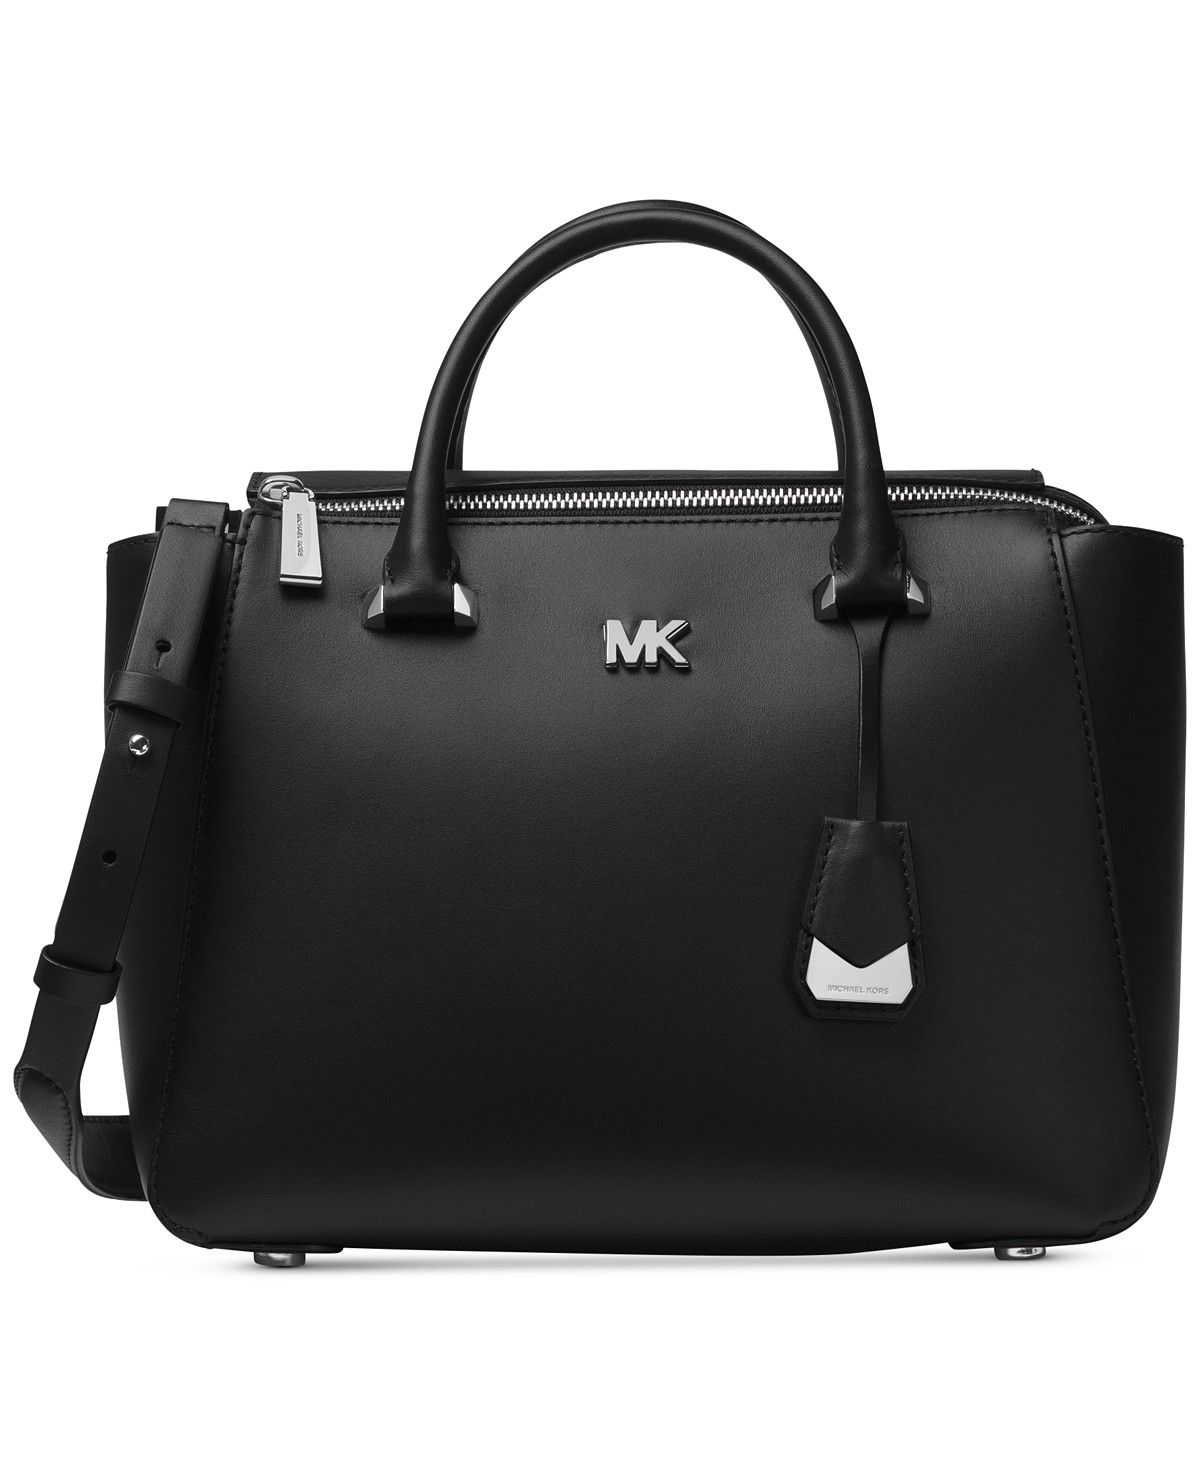 6029b1f7428c $358 // MICHAEL Michael Kors Nolita Medium Satchel | bags | Leather ...